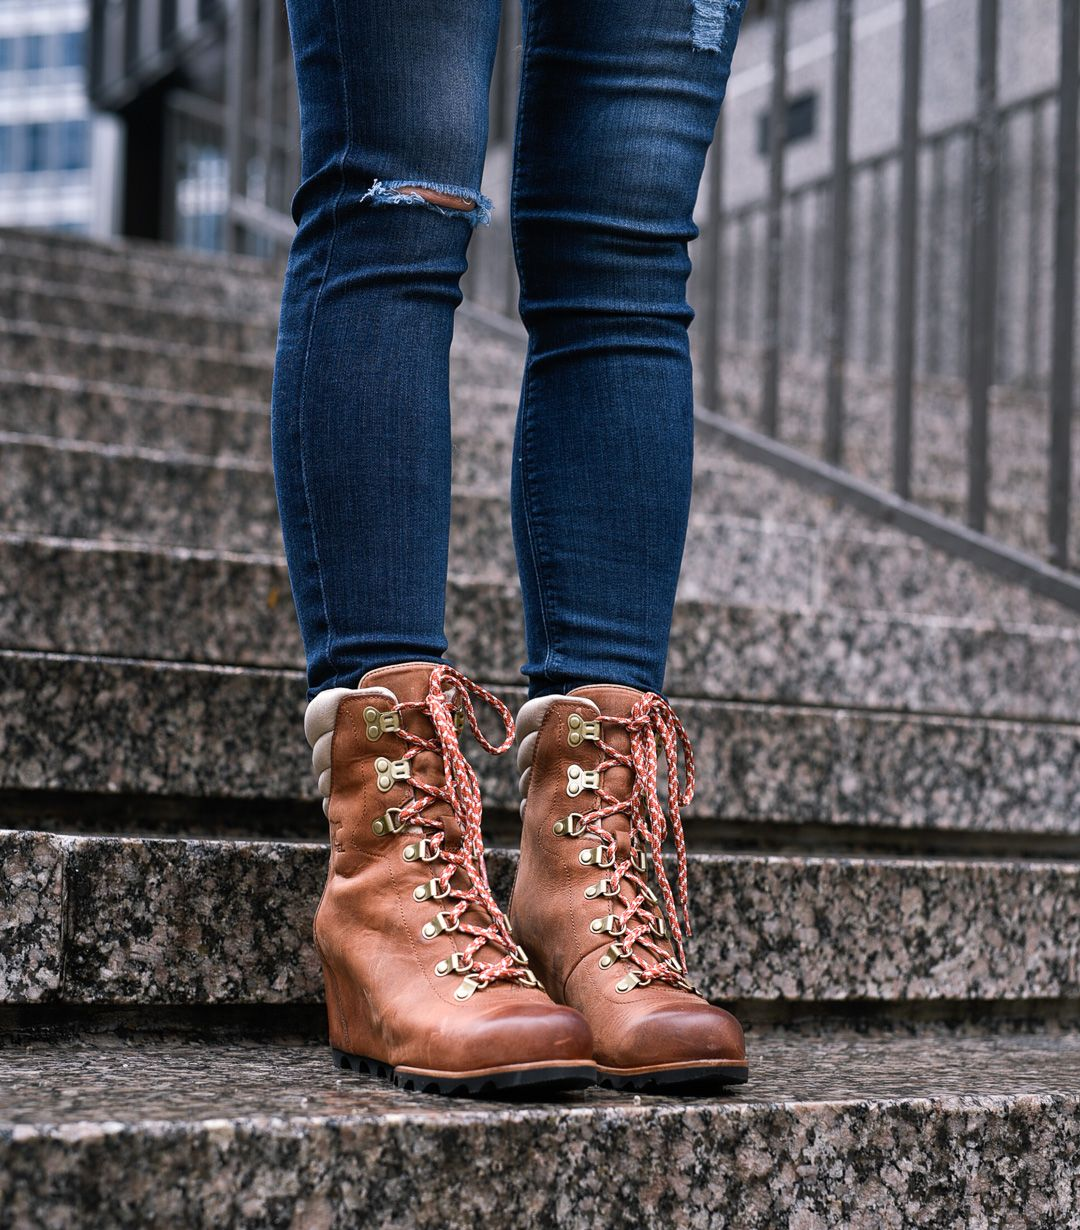 cebf887c293 The cutest  wedges you need for winter with  SOREL and  Zappos! Cute   waterproof  boots are tough to find - these are my favorite (and can  arrive by ...